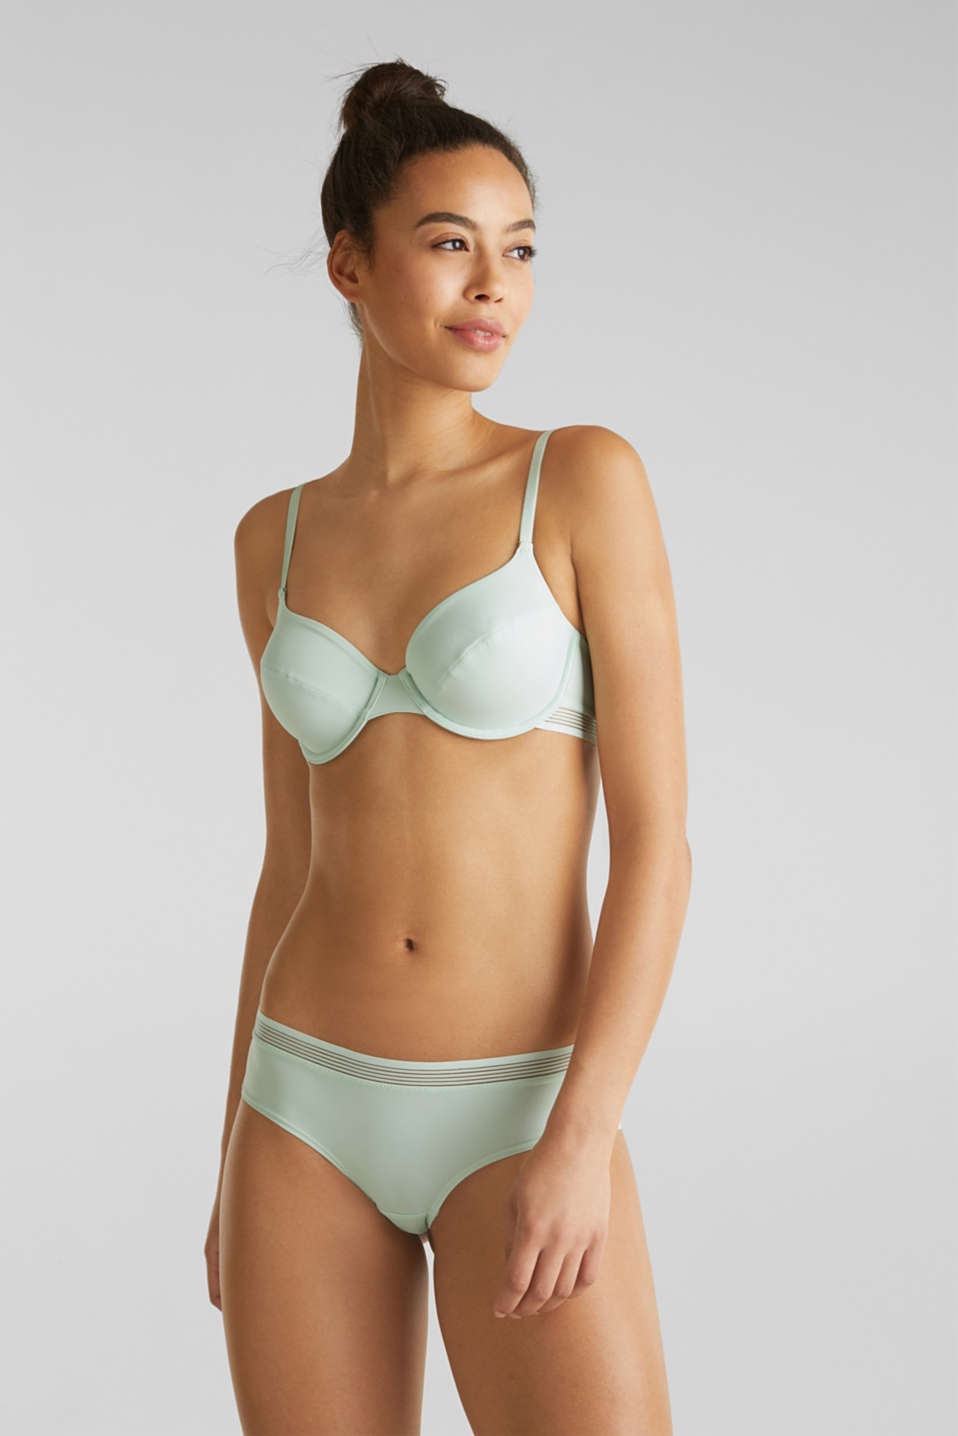 Unpadded underwire bra with sheer stripes, LIGHT AQUA GREEN, detail image number 0